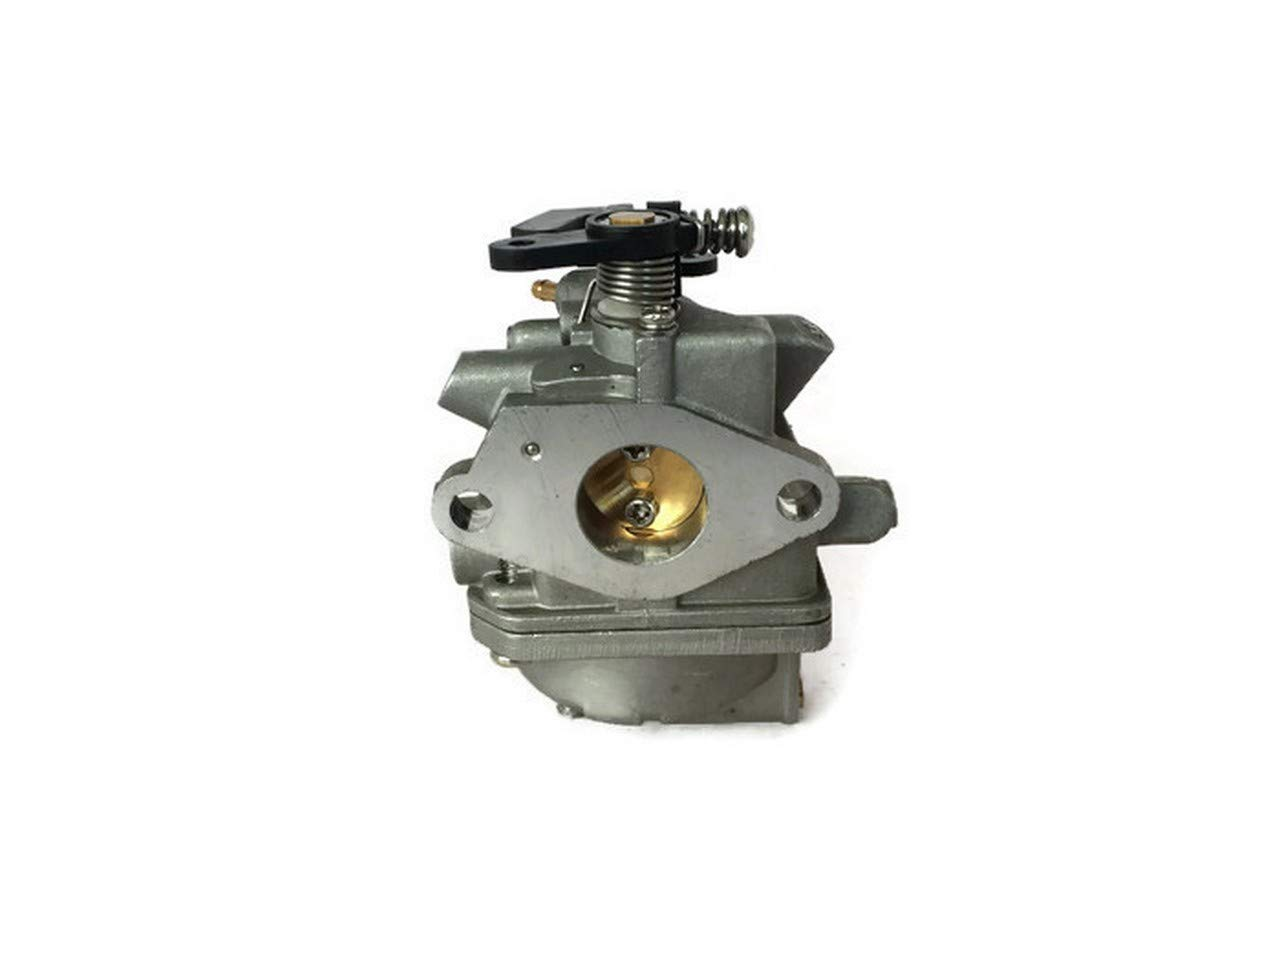 Boat Outboard Motor 3R4-03200-1 0 M CARBURETOR Carb Assy 4 stroke fit Tohatsu Nissan Mercury Outboard 6HP MFS6 NFS6 A2 B Boat Engine by ITACO